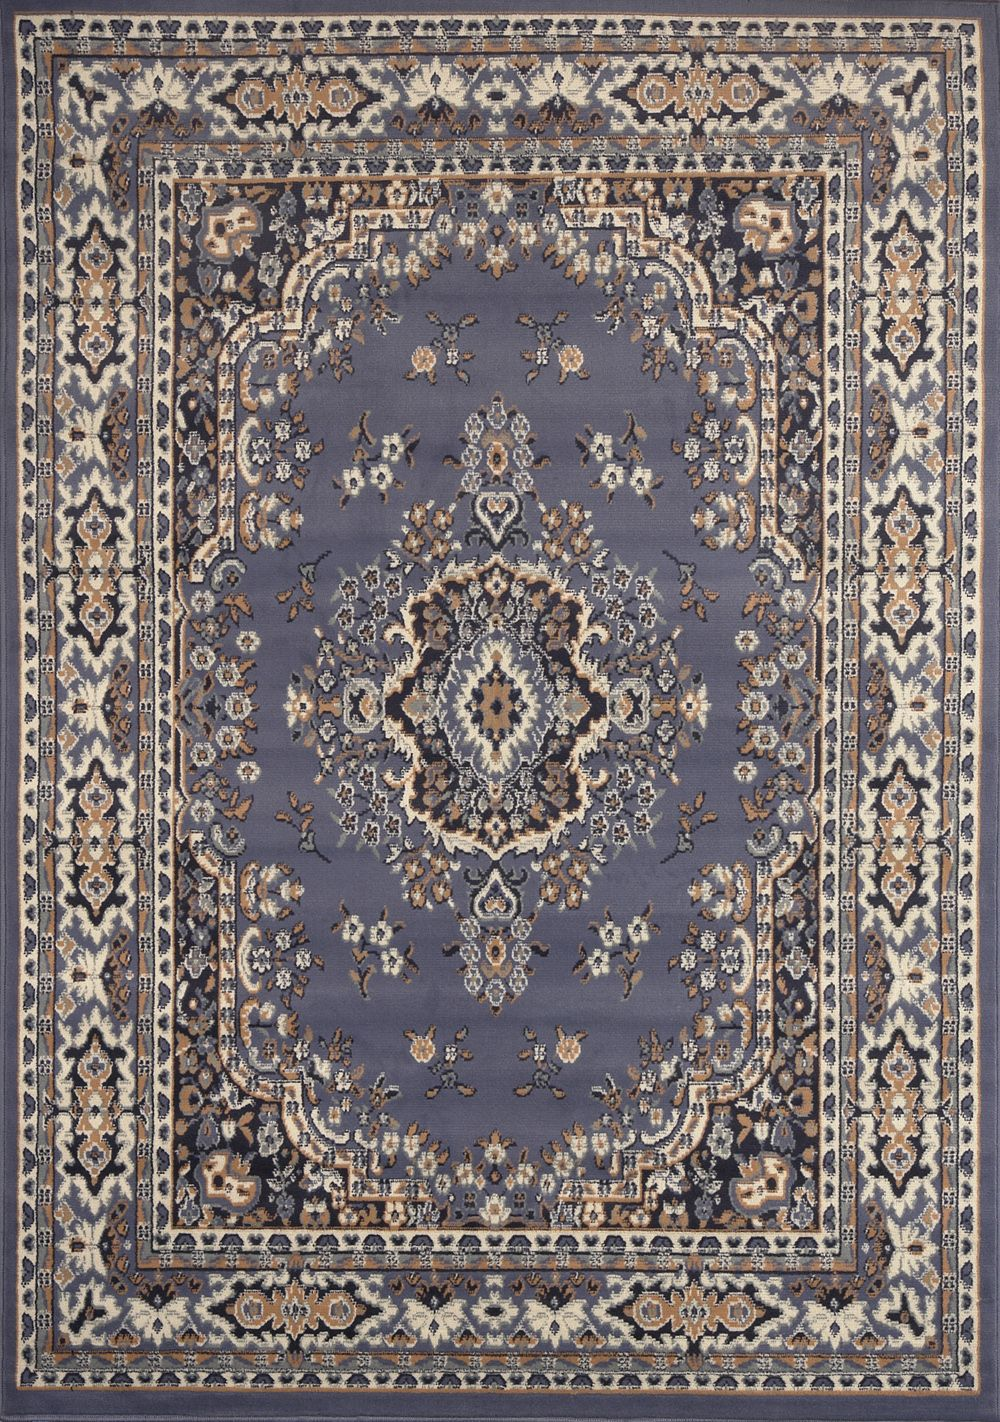 Large Traditional 8x11 Oriental Area Rug Persian Style Carpet Rox 7 8 X10